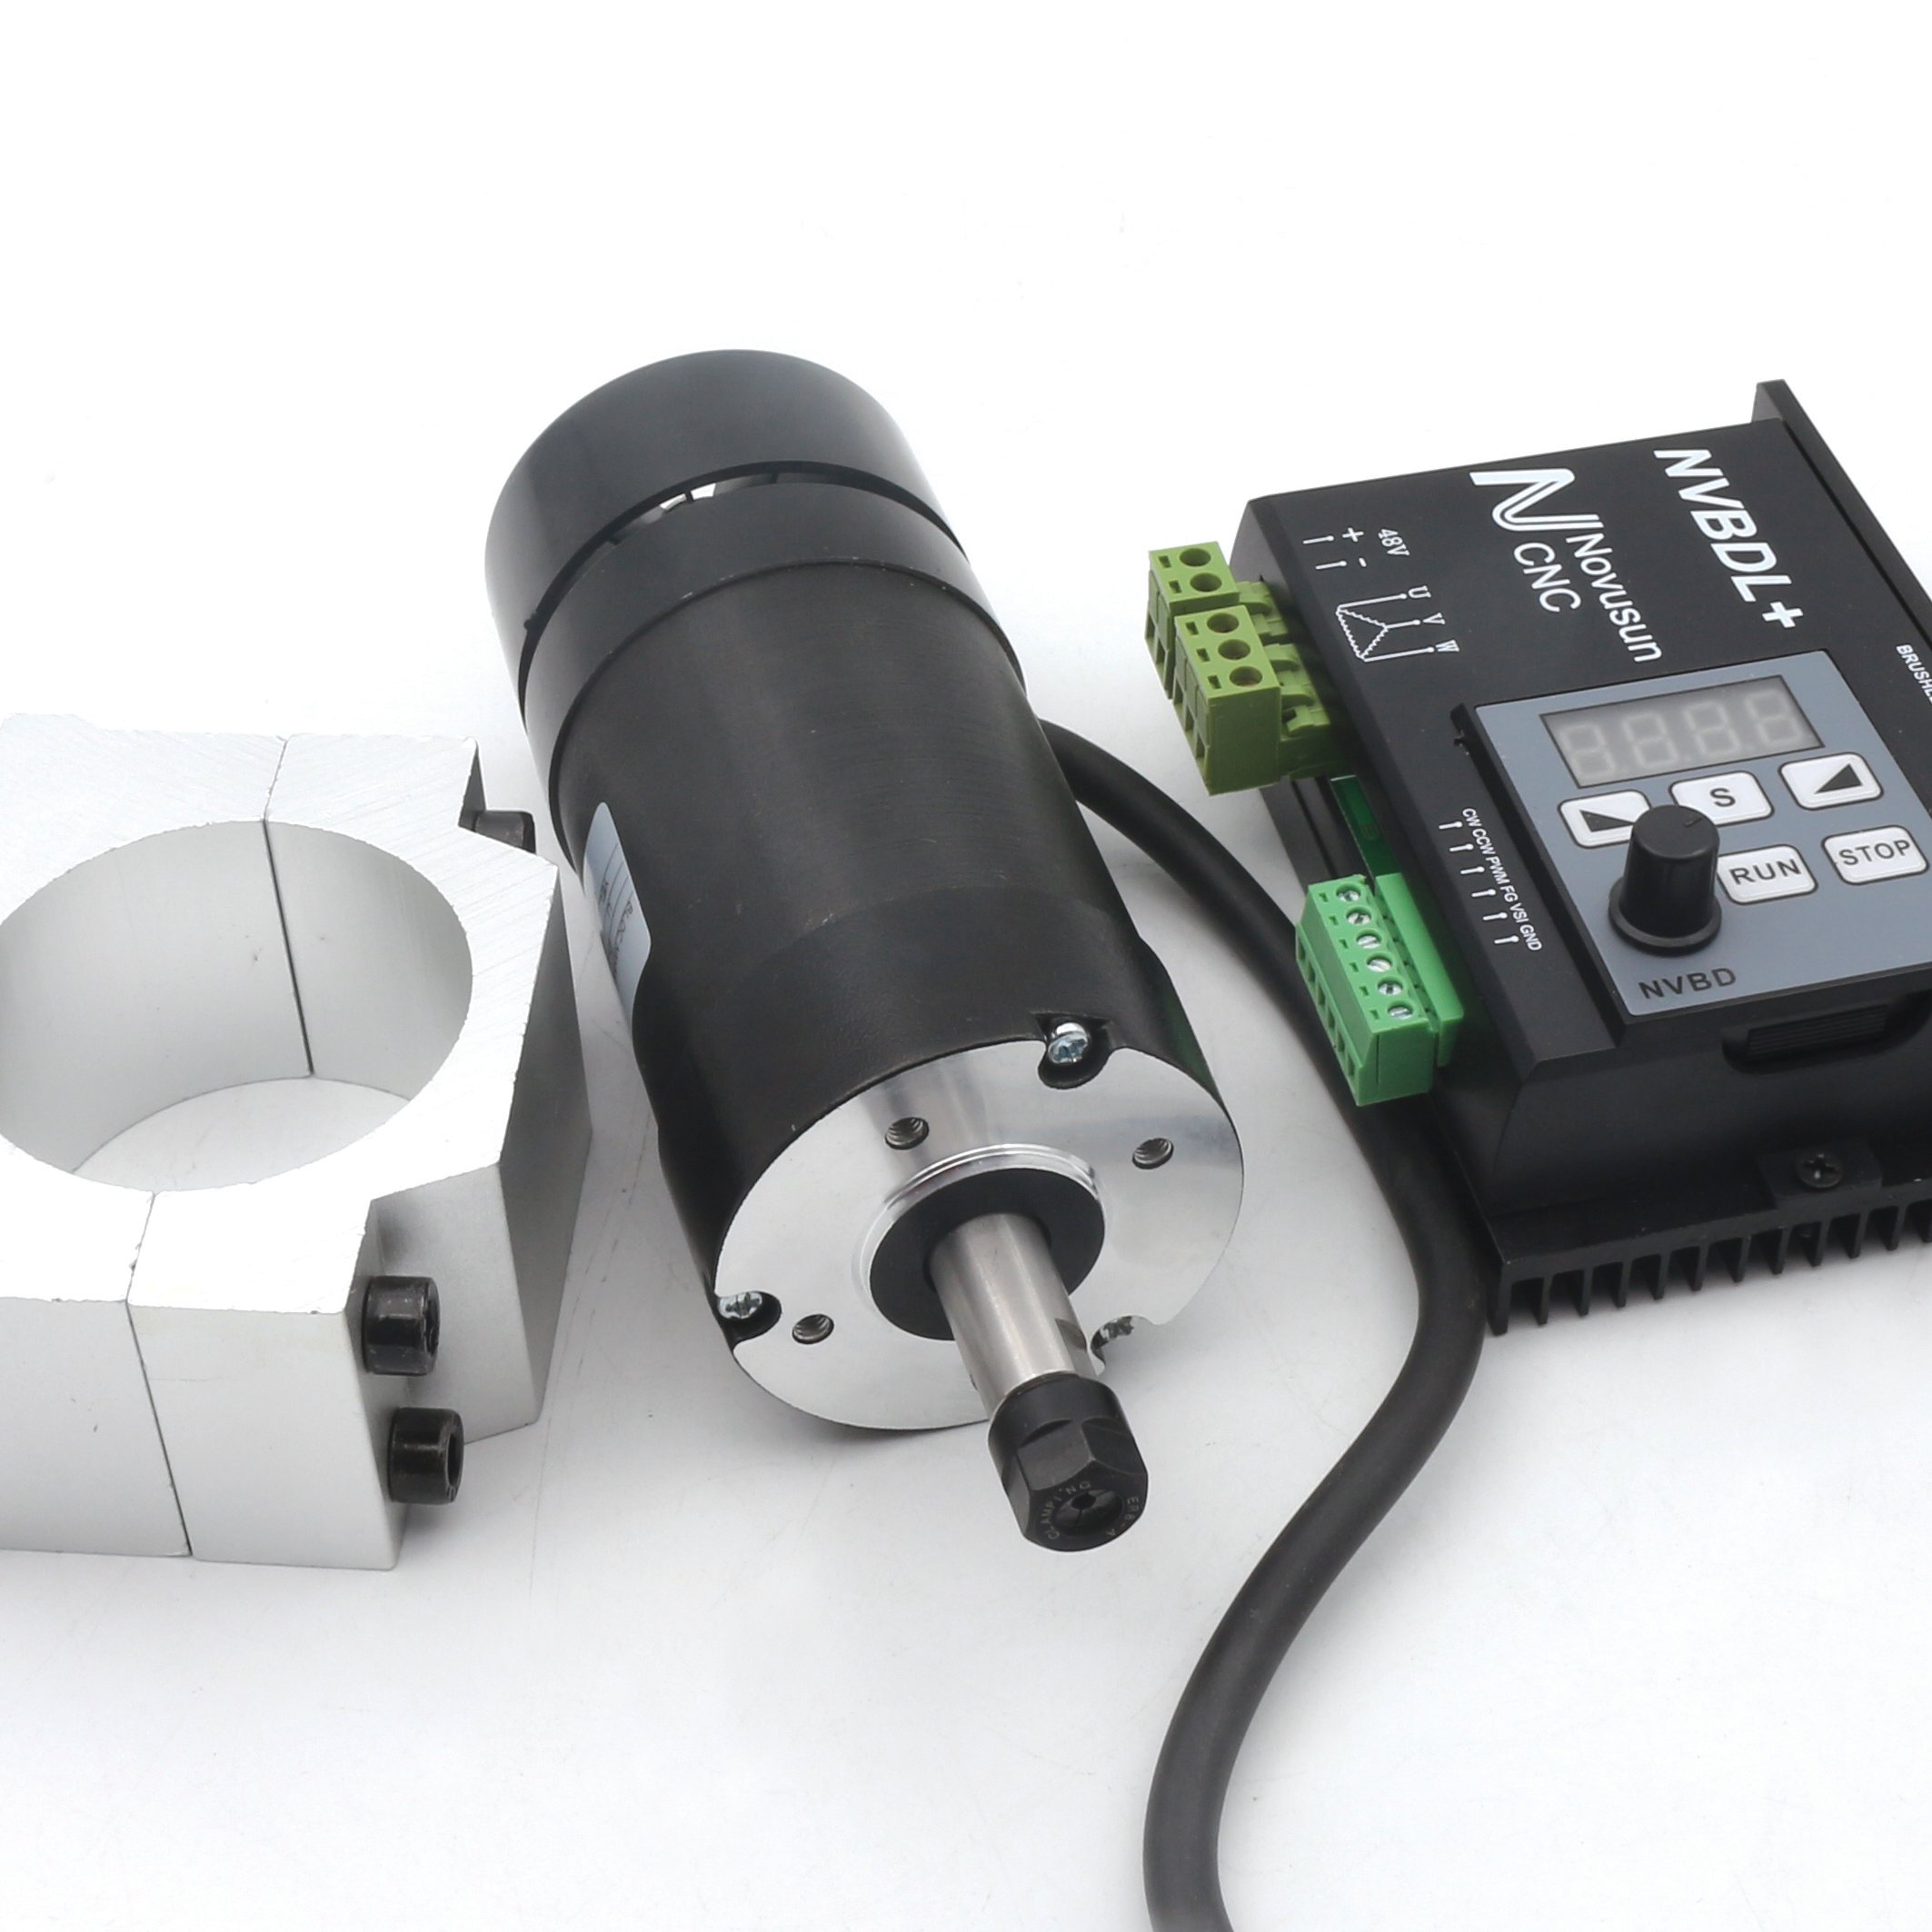 400W CNC DC Air Cooled Spindle Motor ER8 NVBDL+ 12000rpm Brushless Spindle Motor kit + 600w Brushless Motor Driver Without Hall LCD Panel + 55mm Mount Bracket 【For small and medium-sized processing】